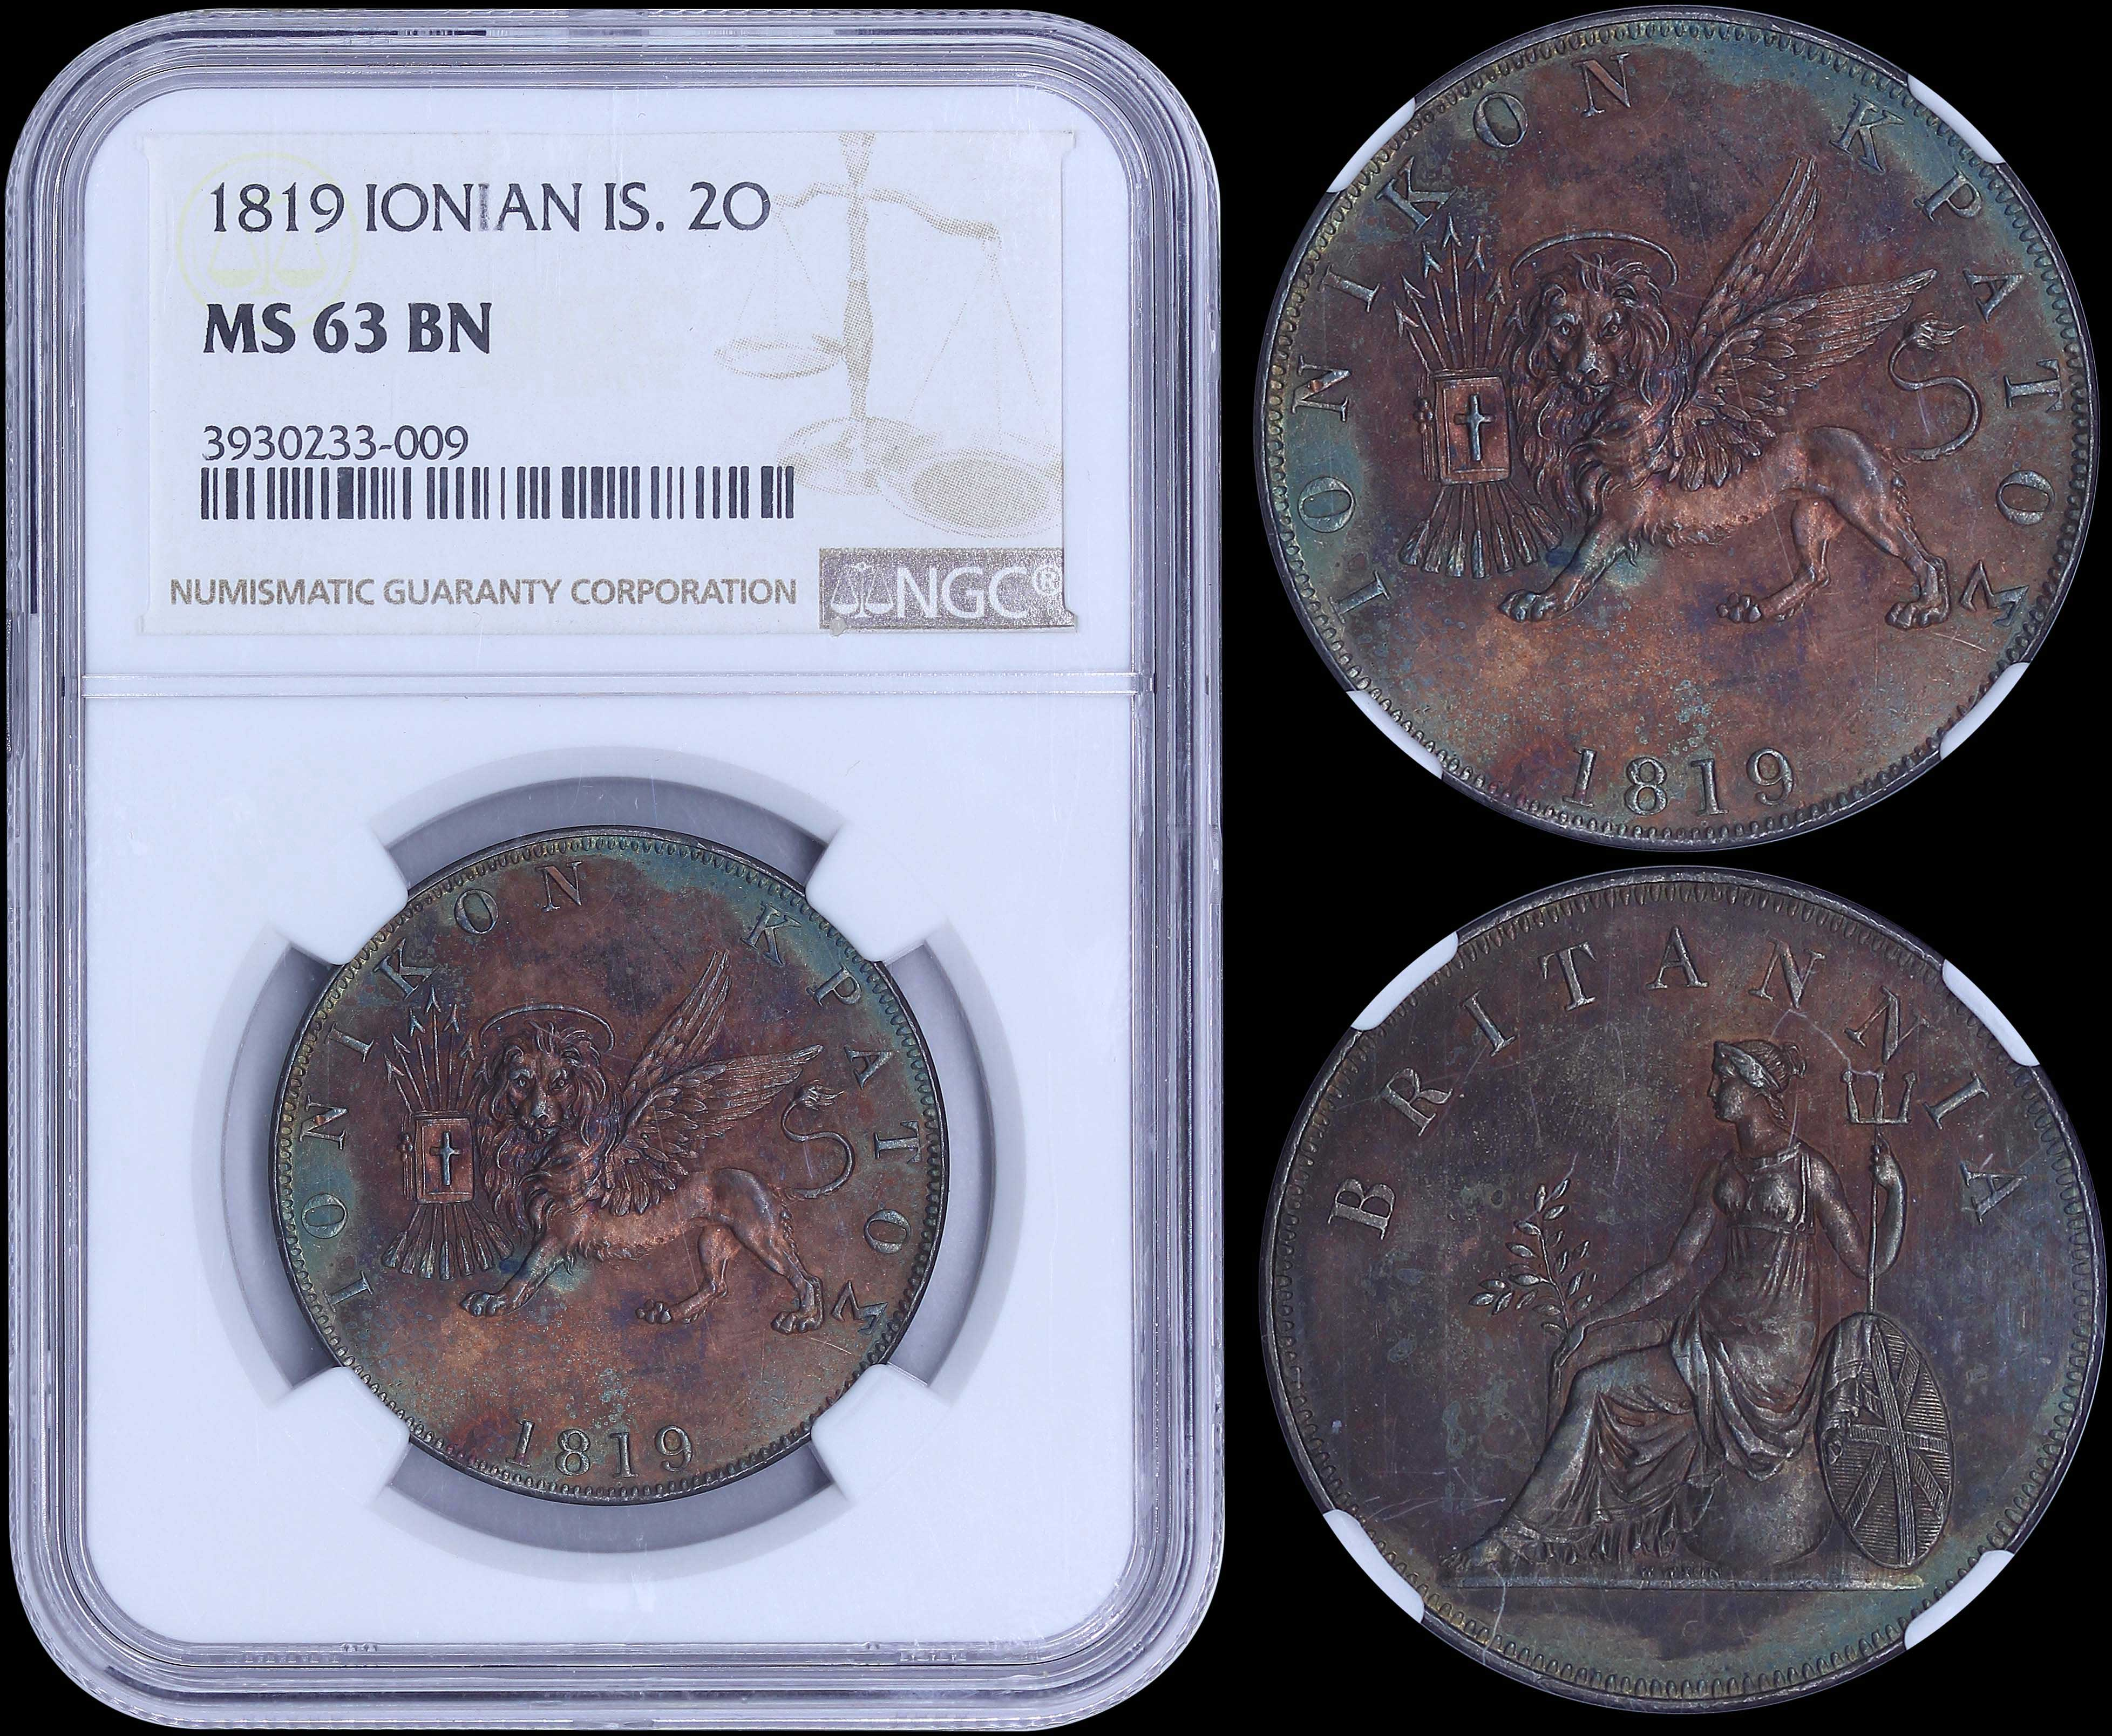 Lot 6286 - -  COINS & TOKENS ionian state -  A. Karamitsos Public & Live Internet Auction 682 (Part A) Coins, Medals & Banknotes